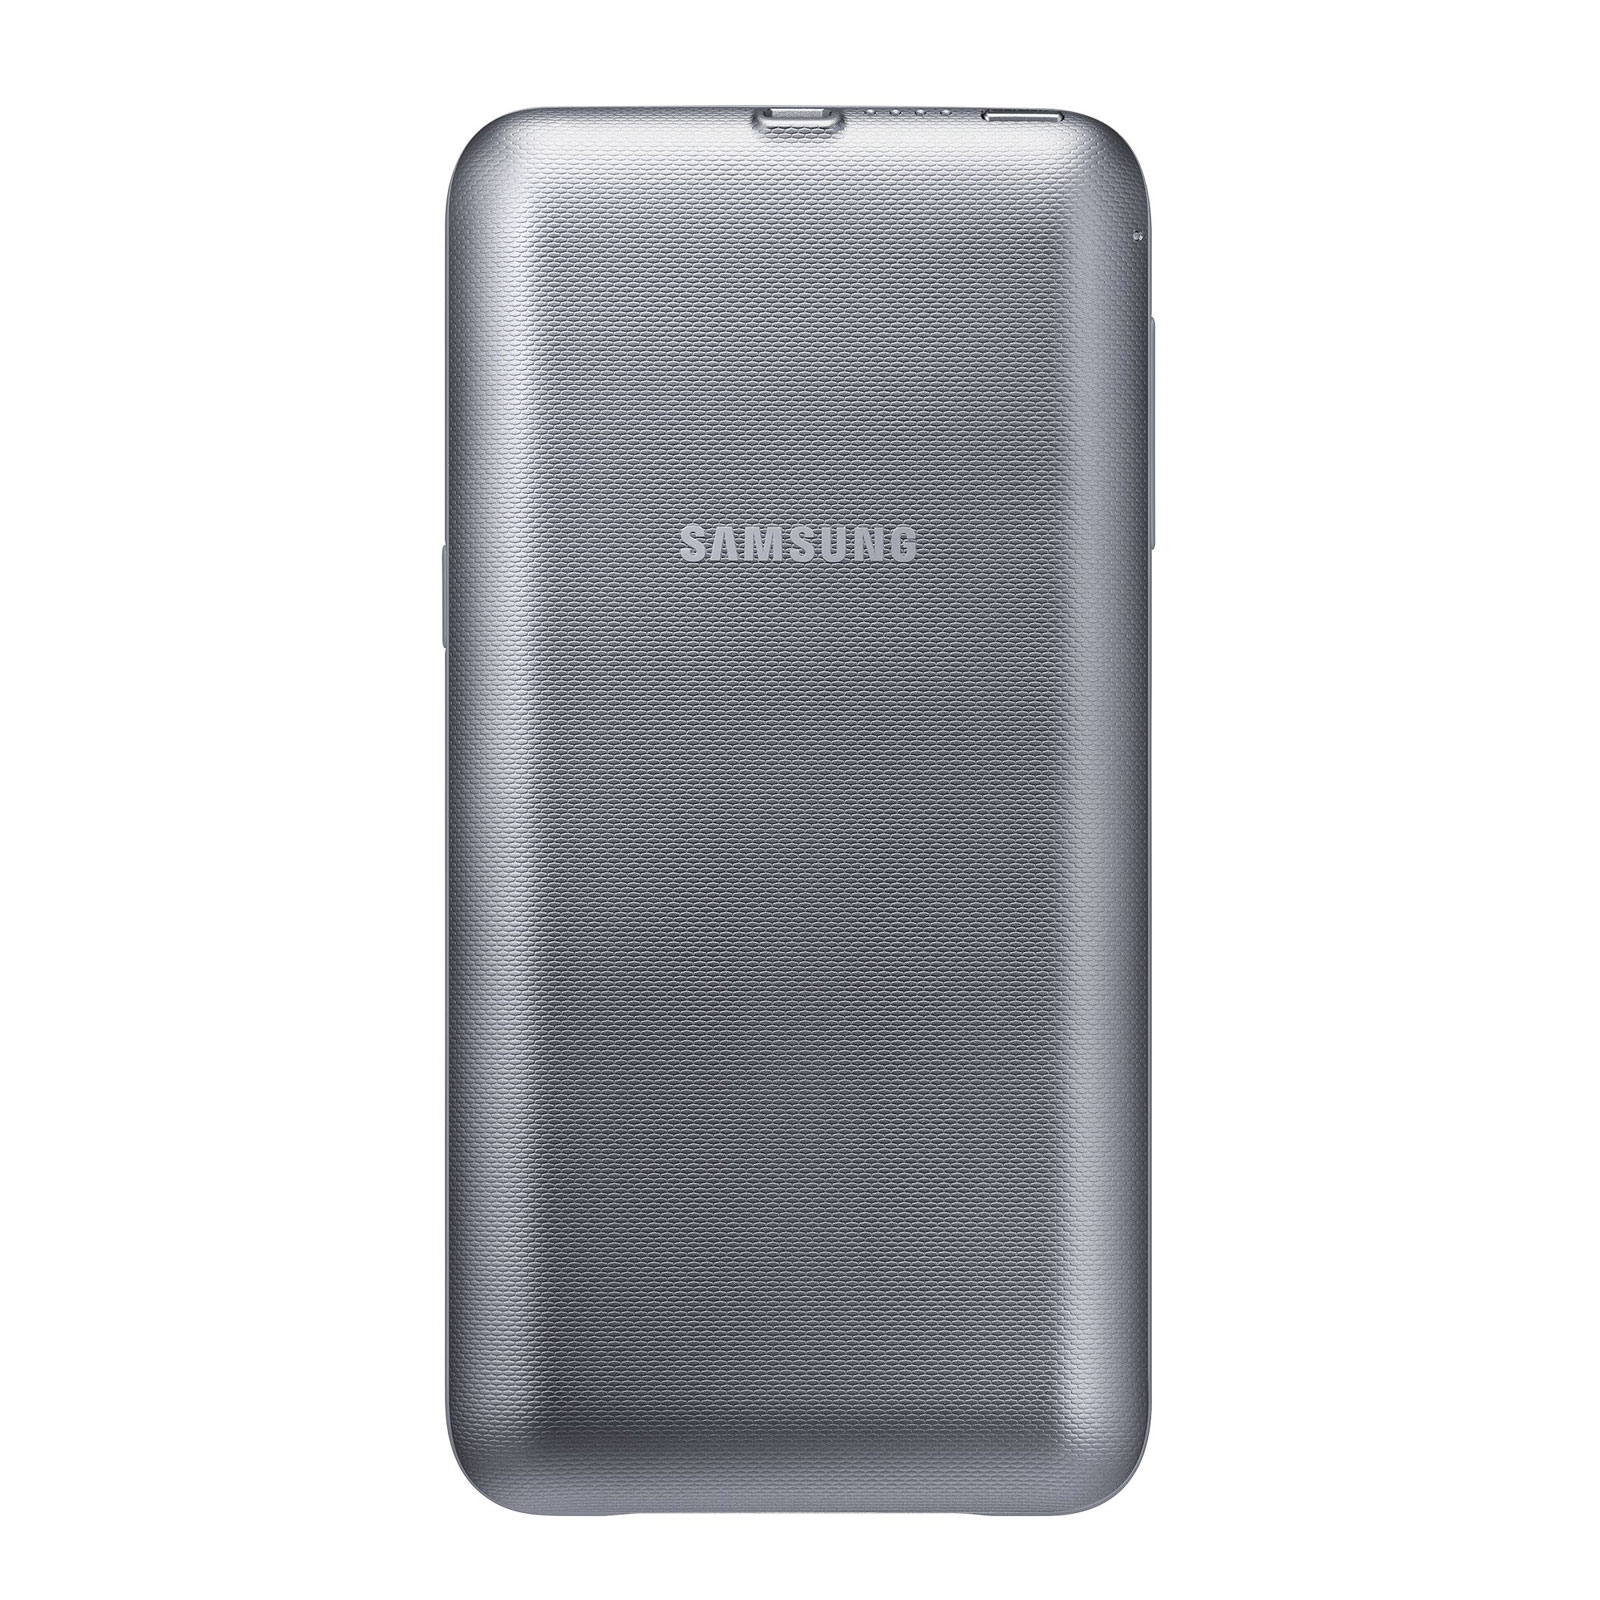 samsung wireless charger pack samsung galaxy s6 edge. Black Bedroom Furniture Sets. Home Design Ideas